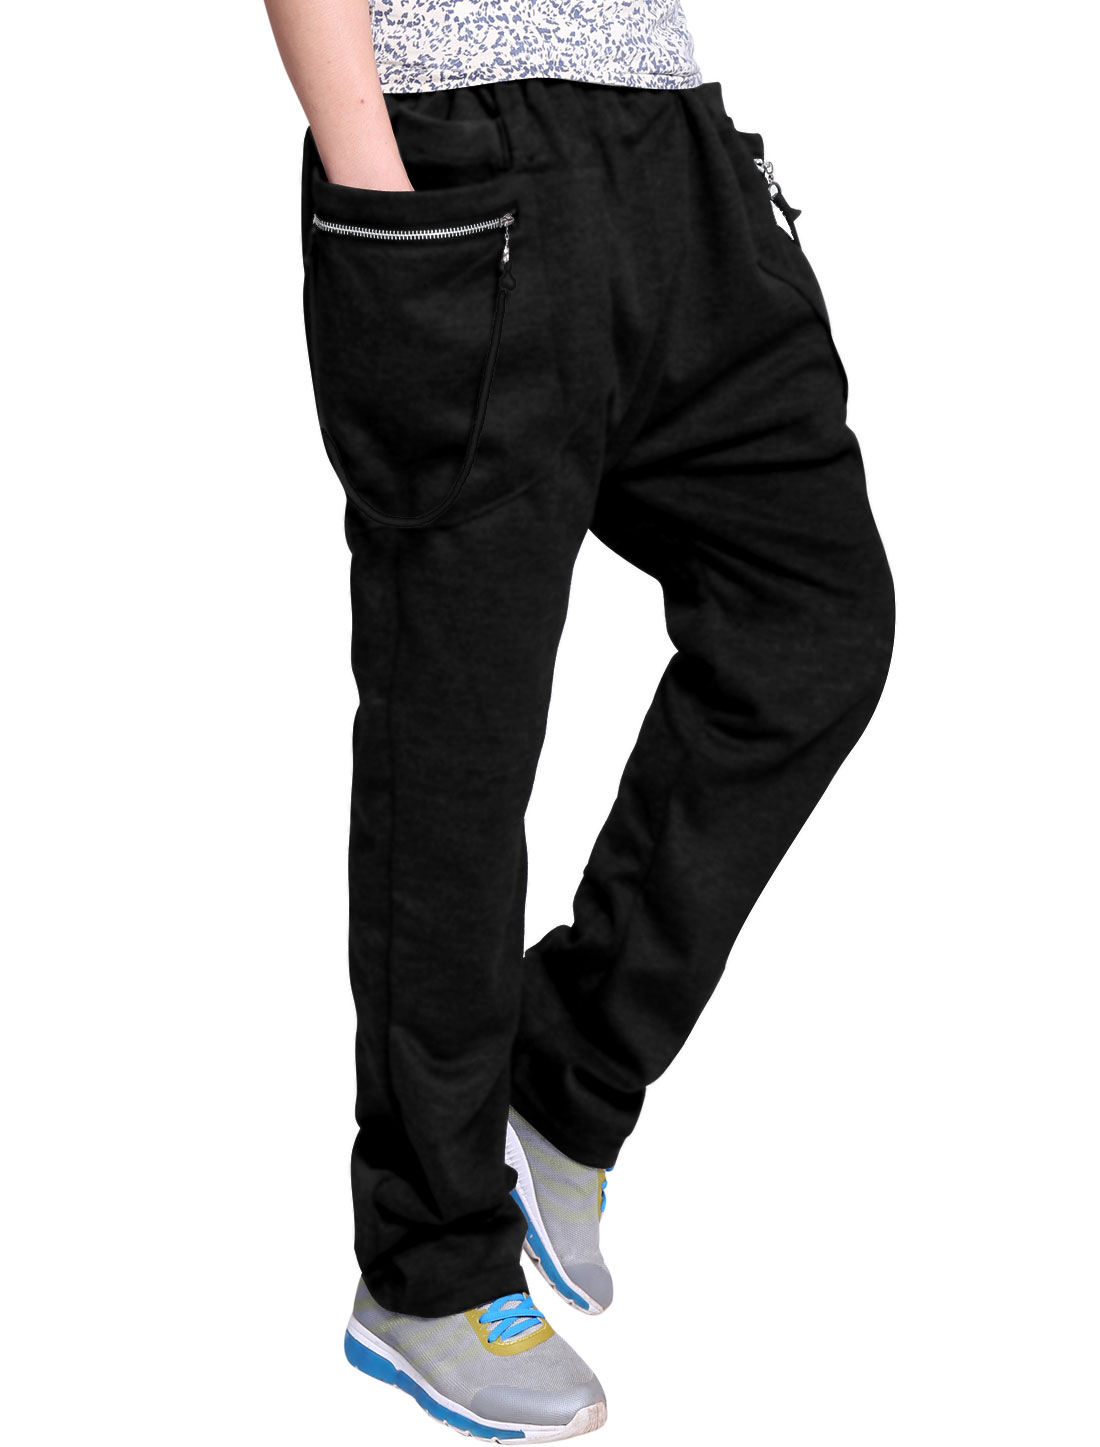 Two Sides Pocket Elastic Waist Black Casual Pants for Man W36